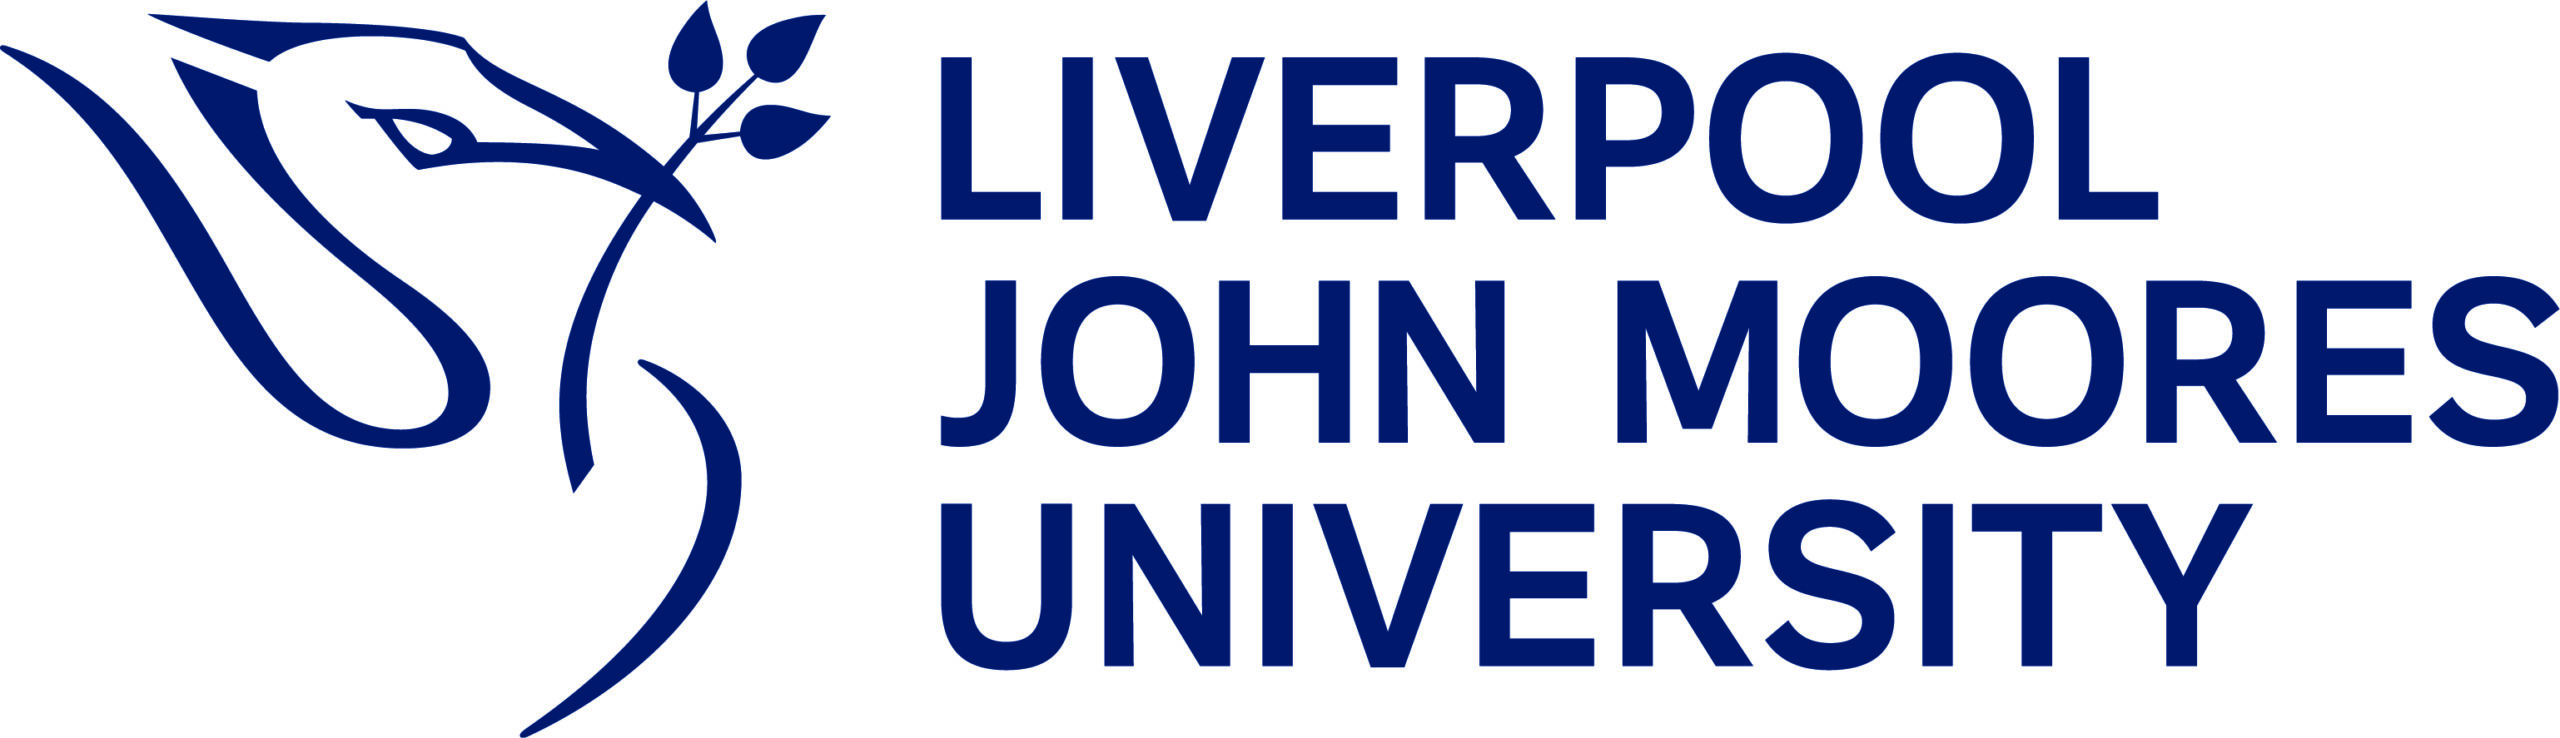 Liverpool John Moores University – live postgraduate Q&As – 15th and 16th June 2021 Logo